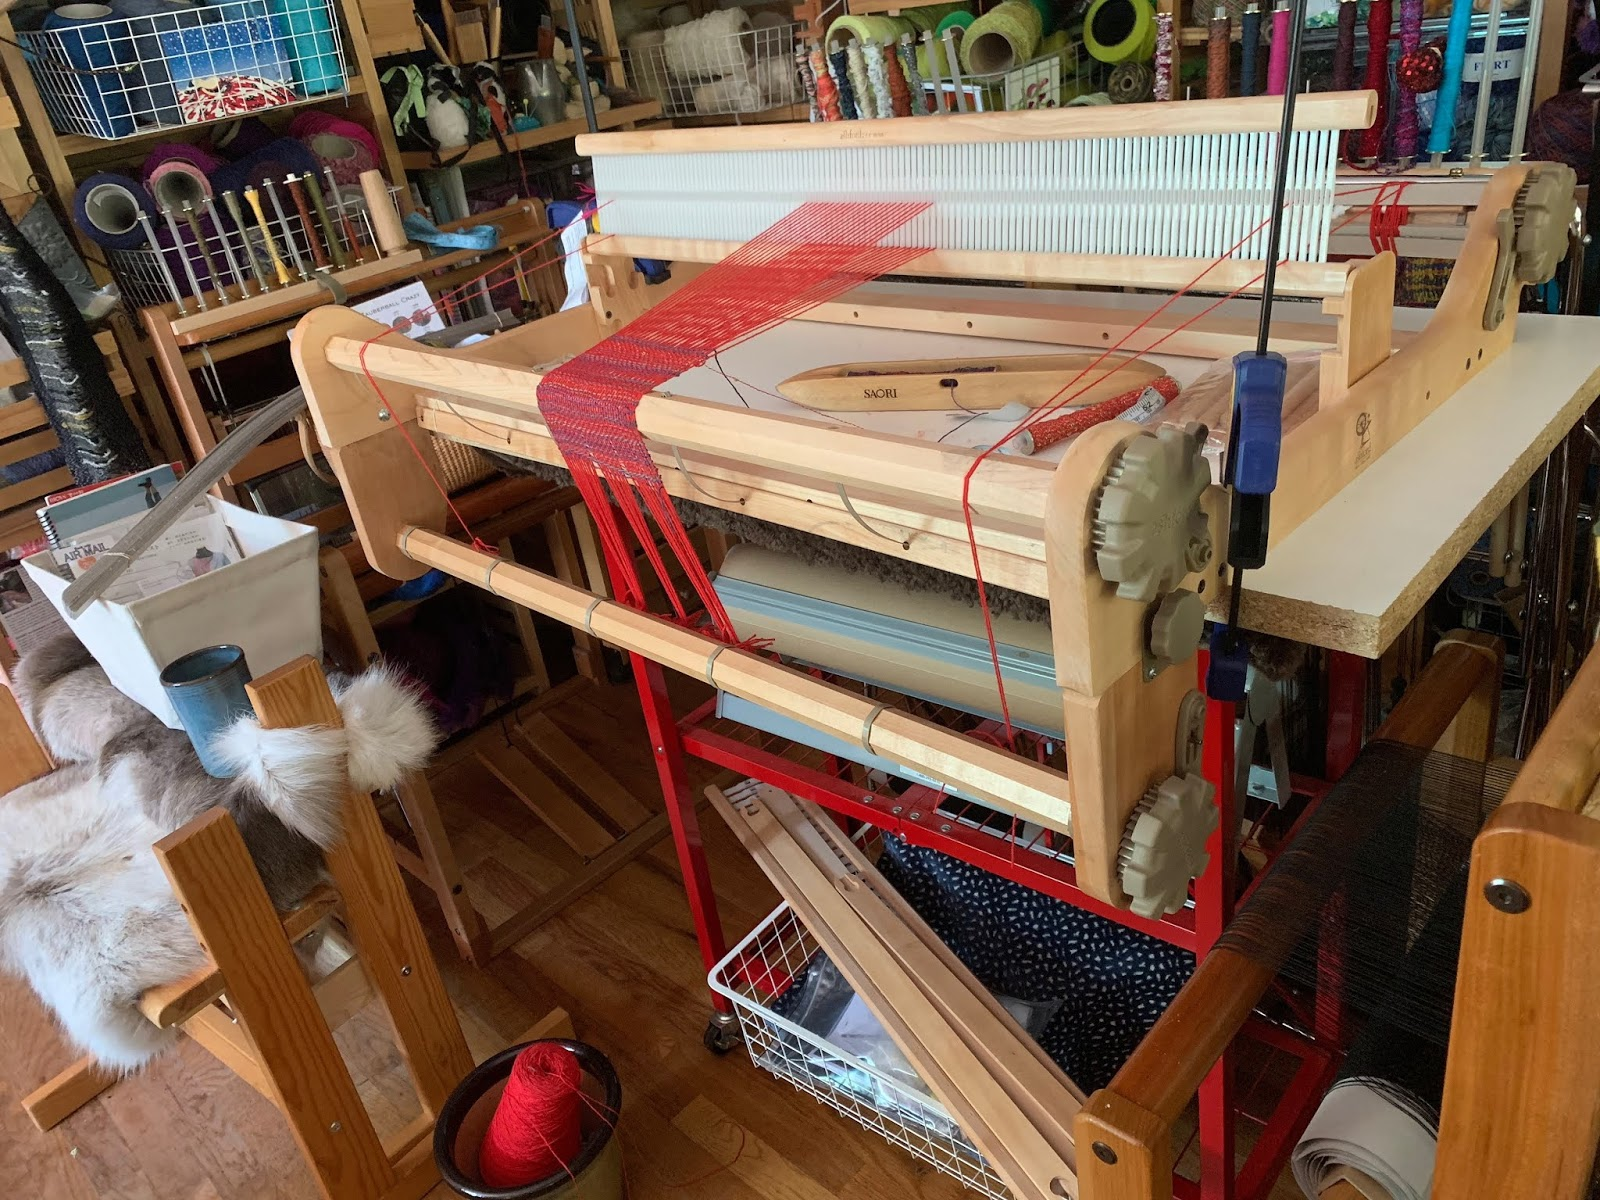 CENTERING WITH FIBER: Ashford rigid heddle loom comparisoms